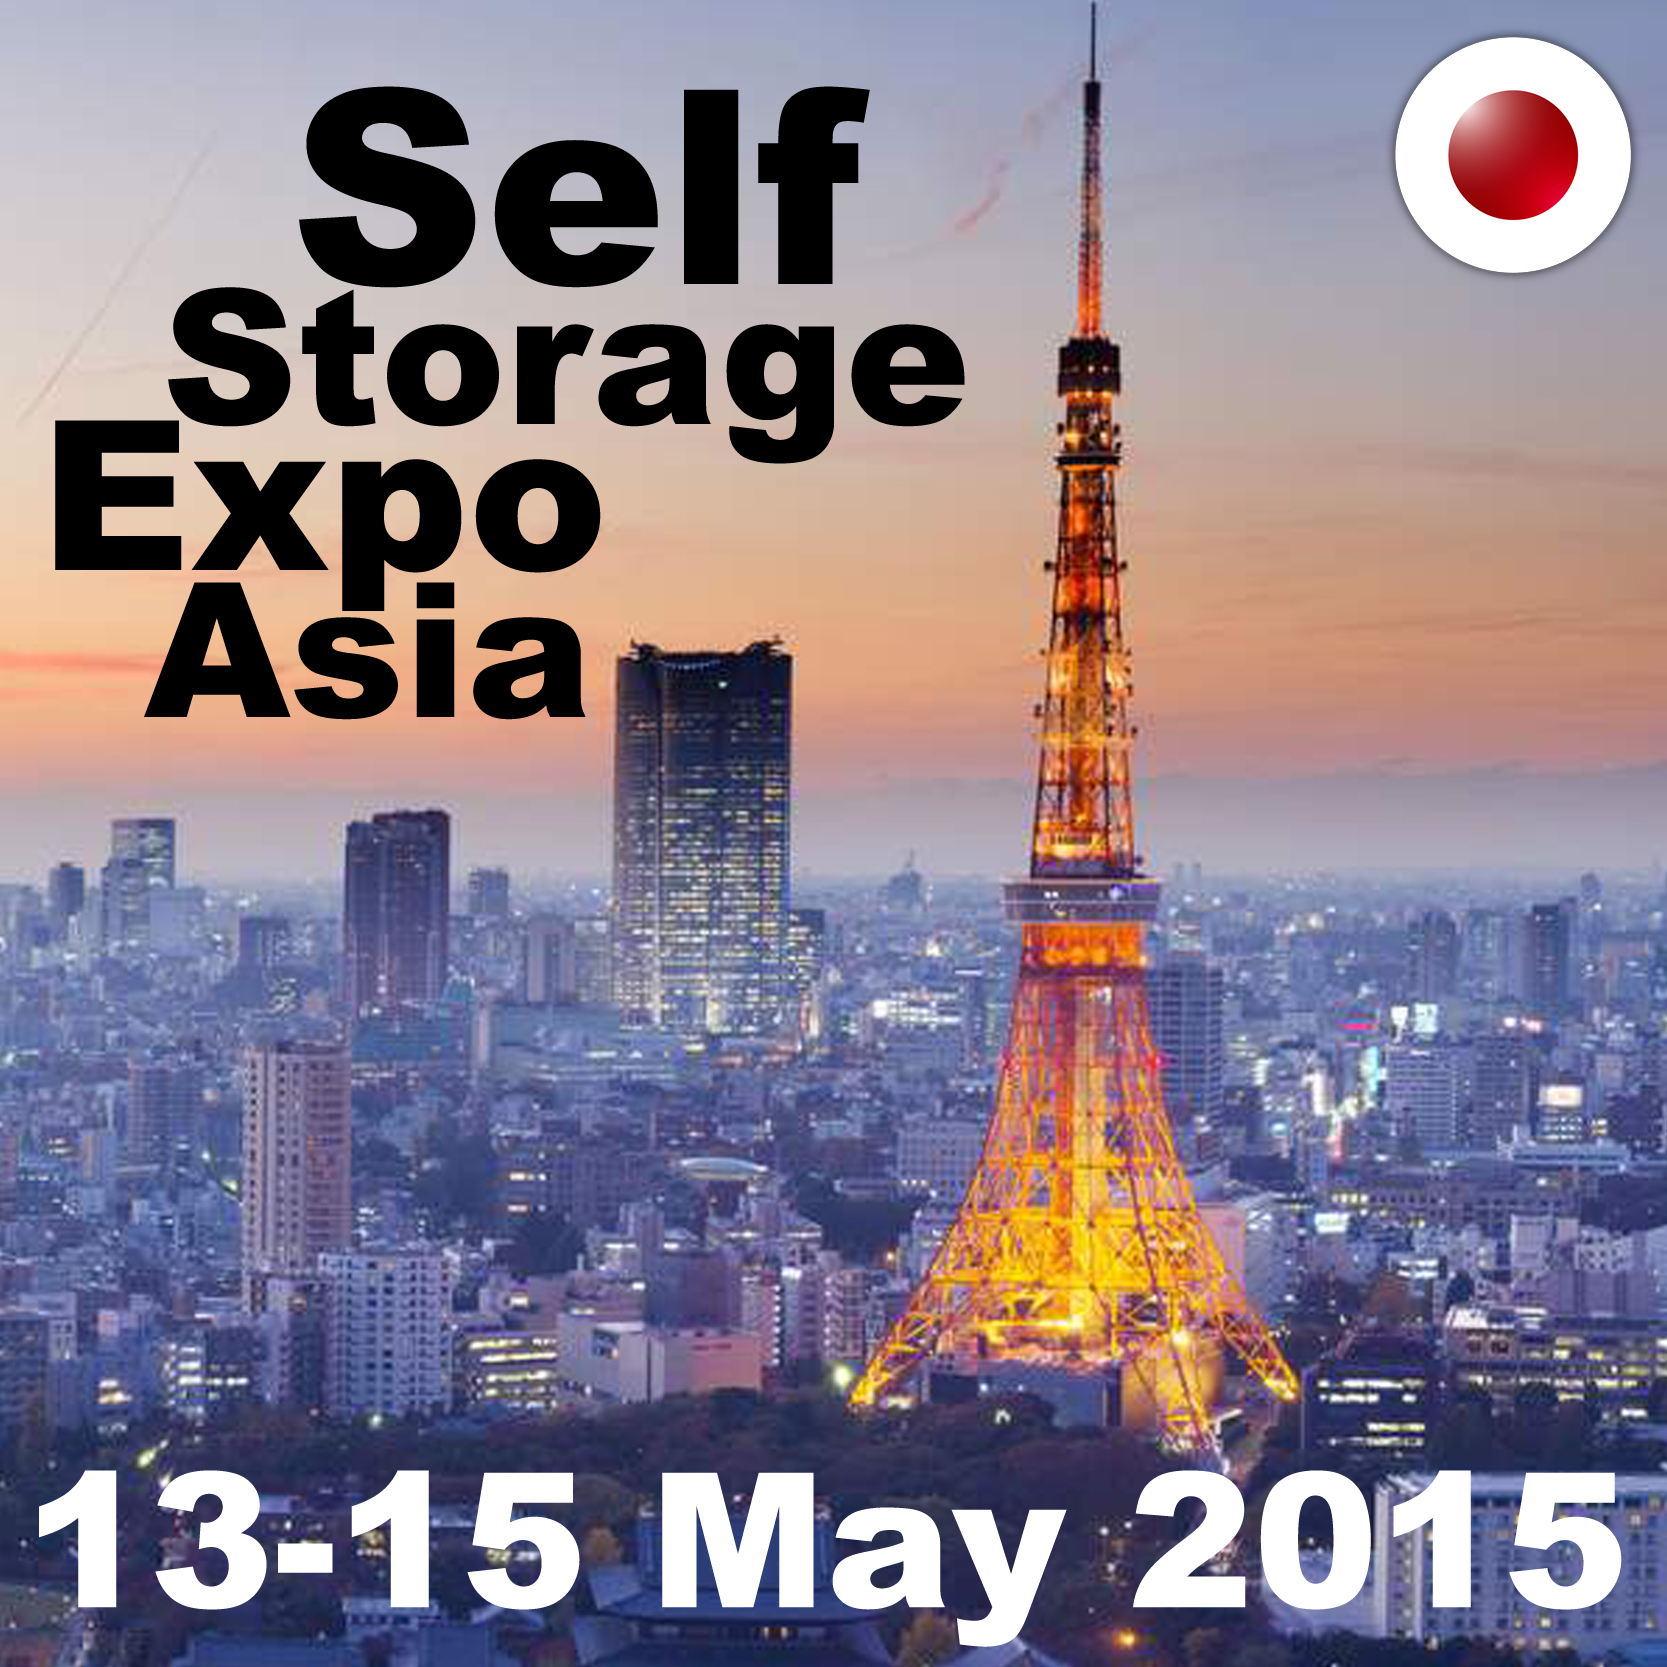 May 13-15 - Self Storage Expo Asia 2015